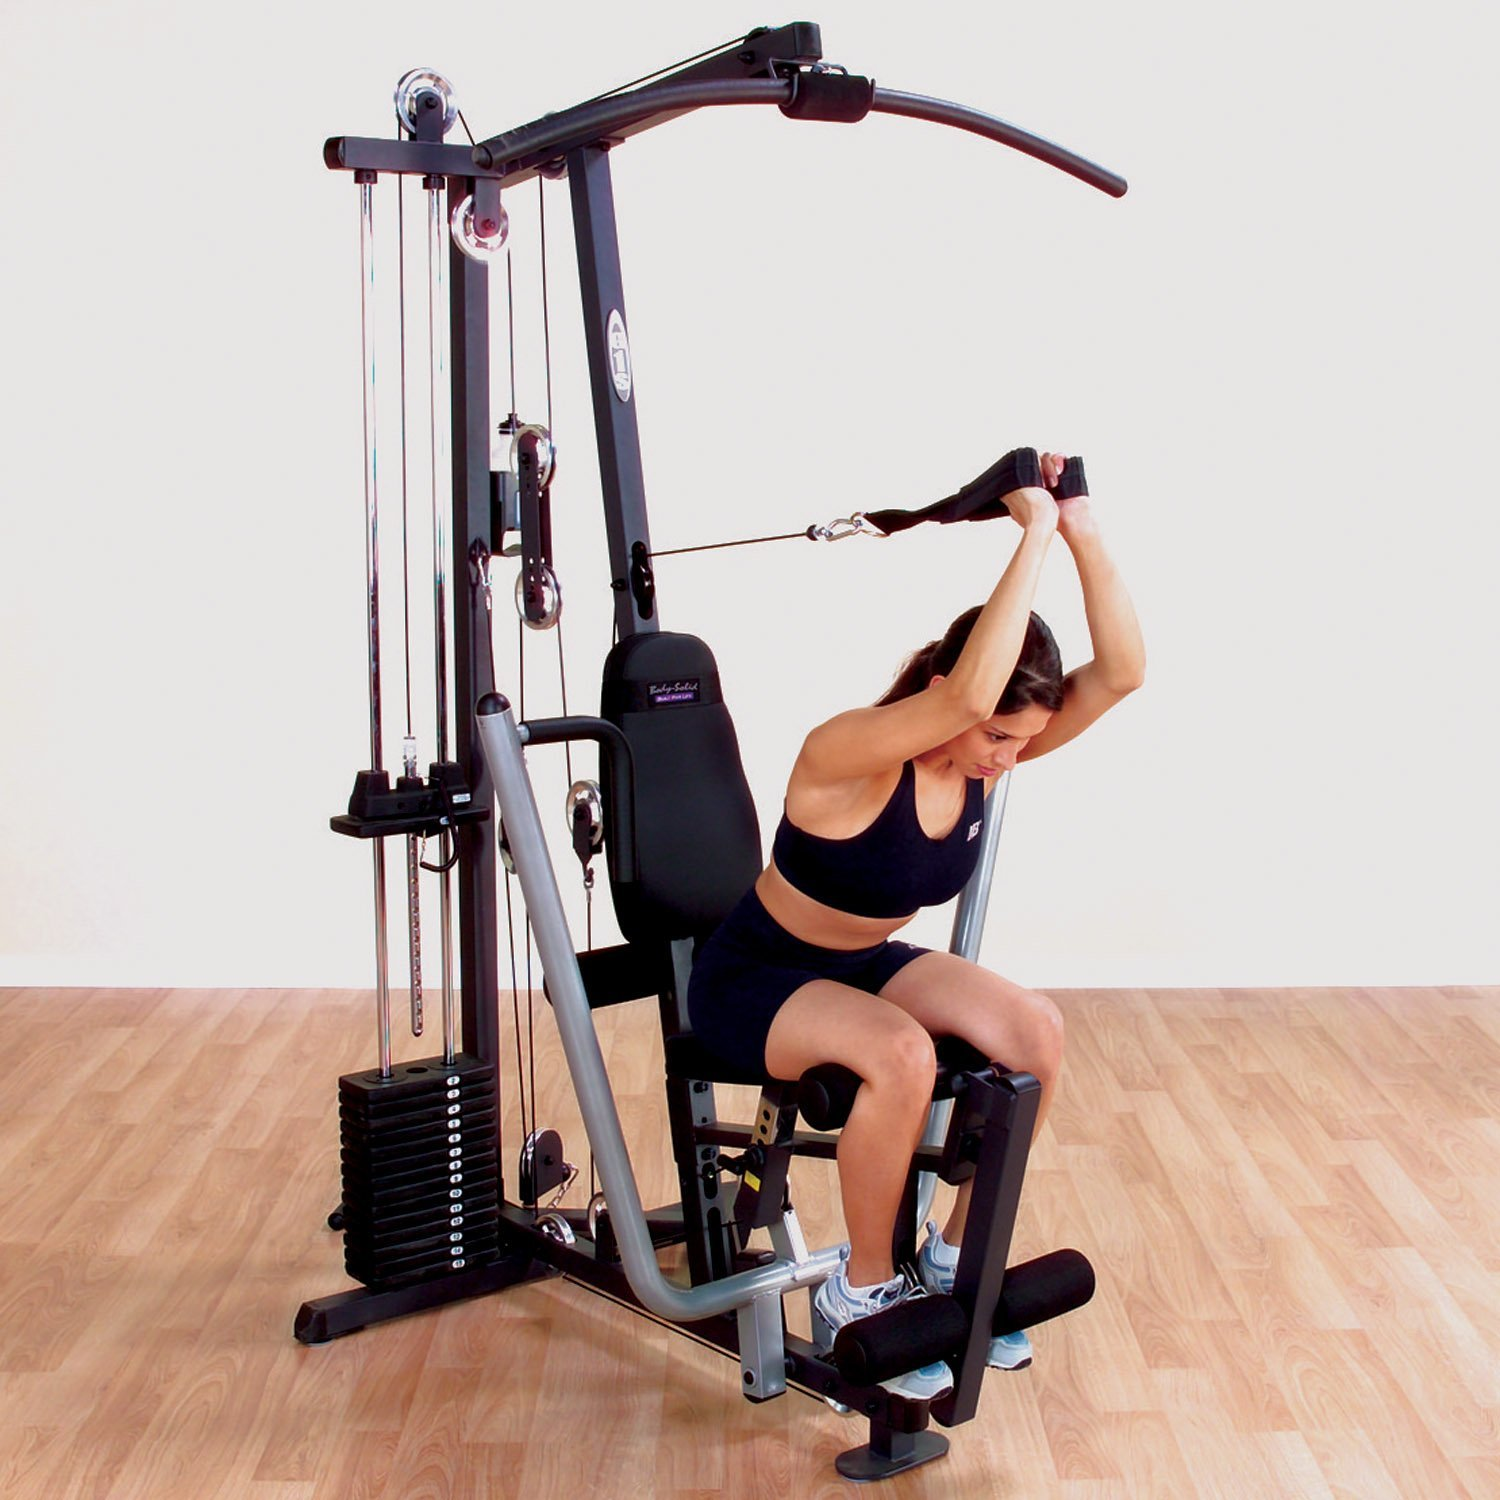 Mma Fitness Gear Equipment Home: Choices For Home Gym Equipment That Offer Total Fitness